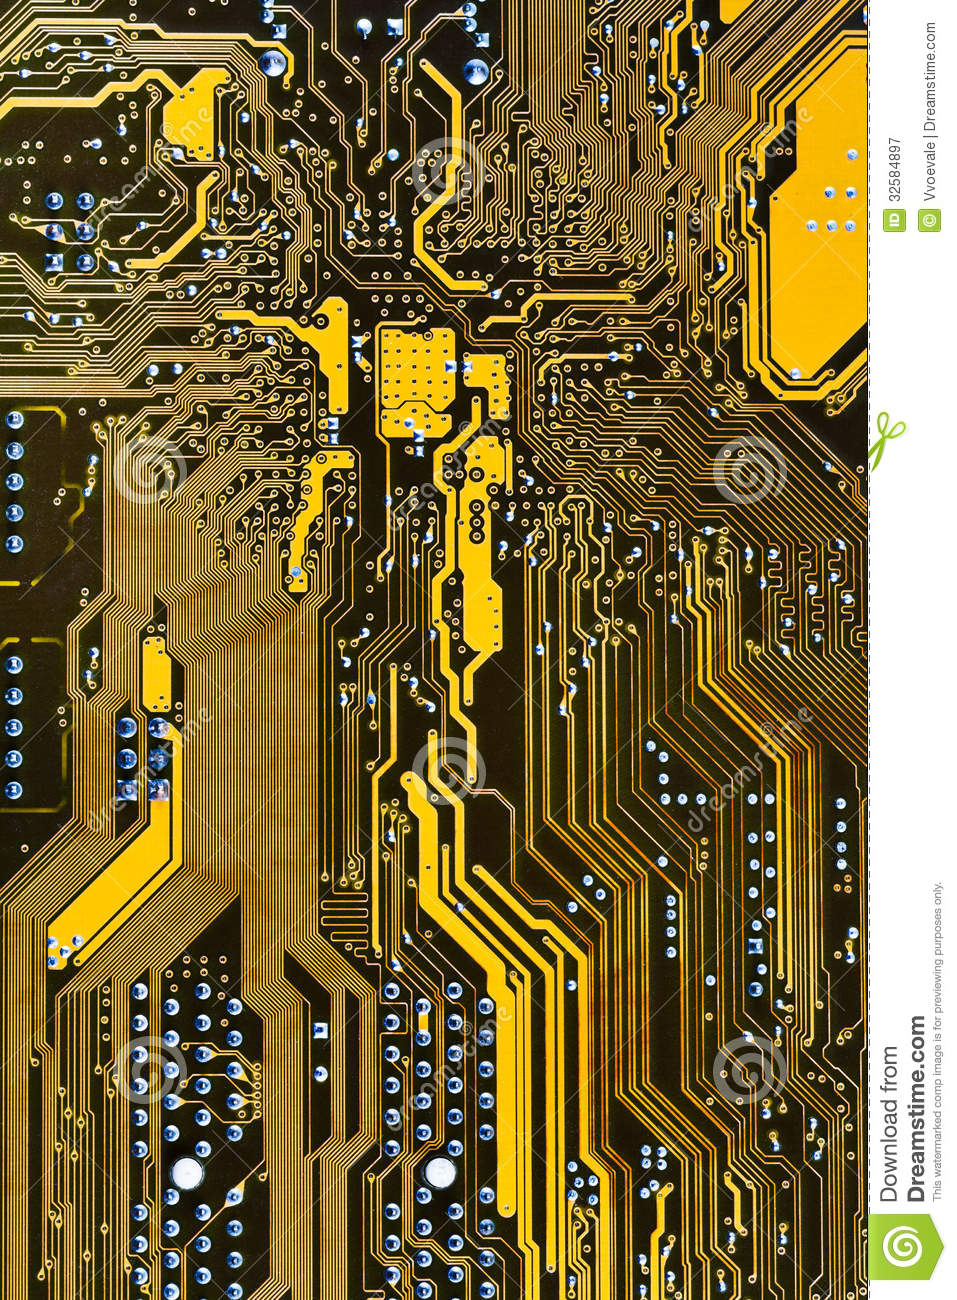 Integrated Circuit Board Stock Image Of Chipset 32584897 Electronic Chip Royalty Free Photo